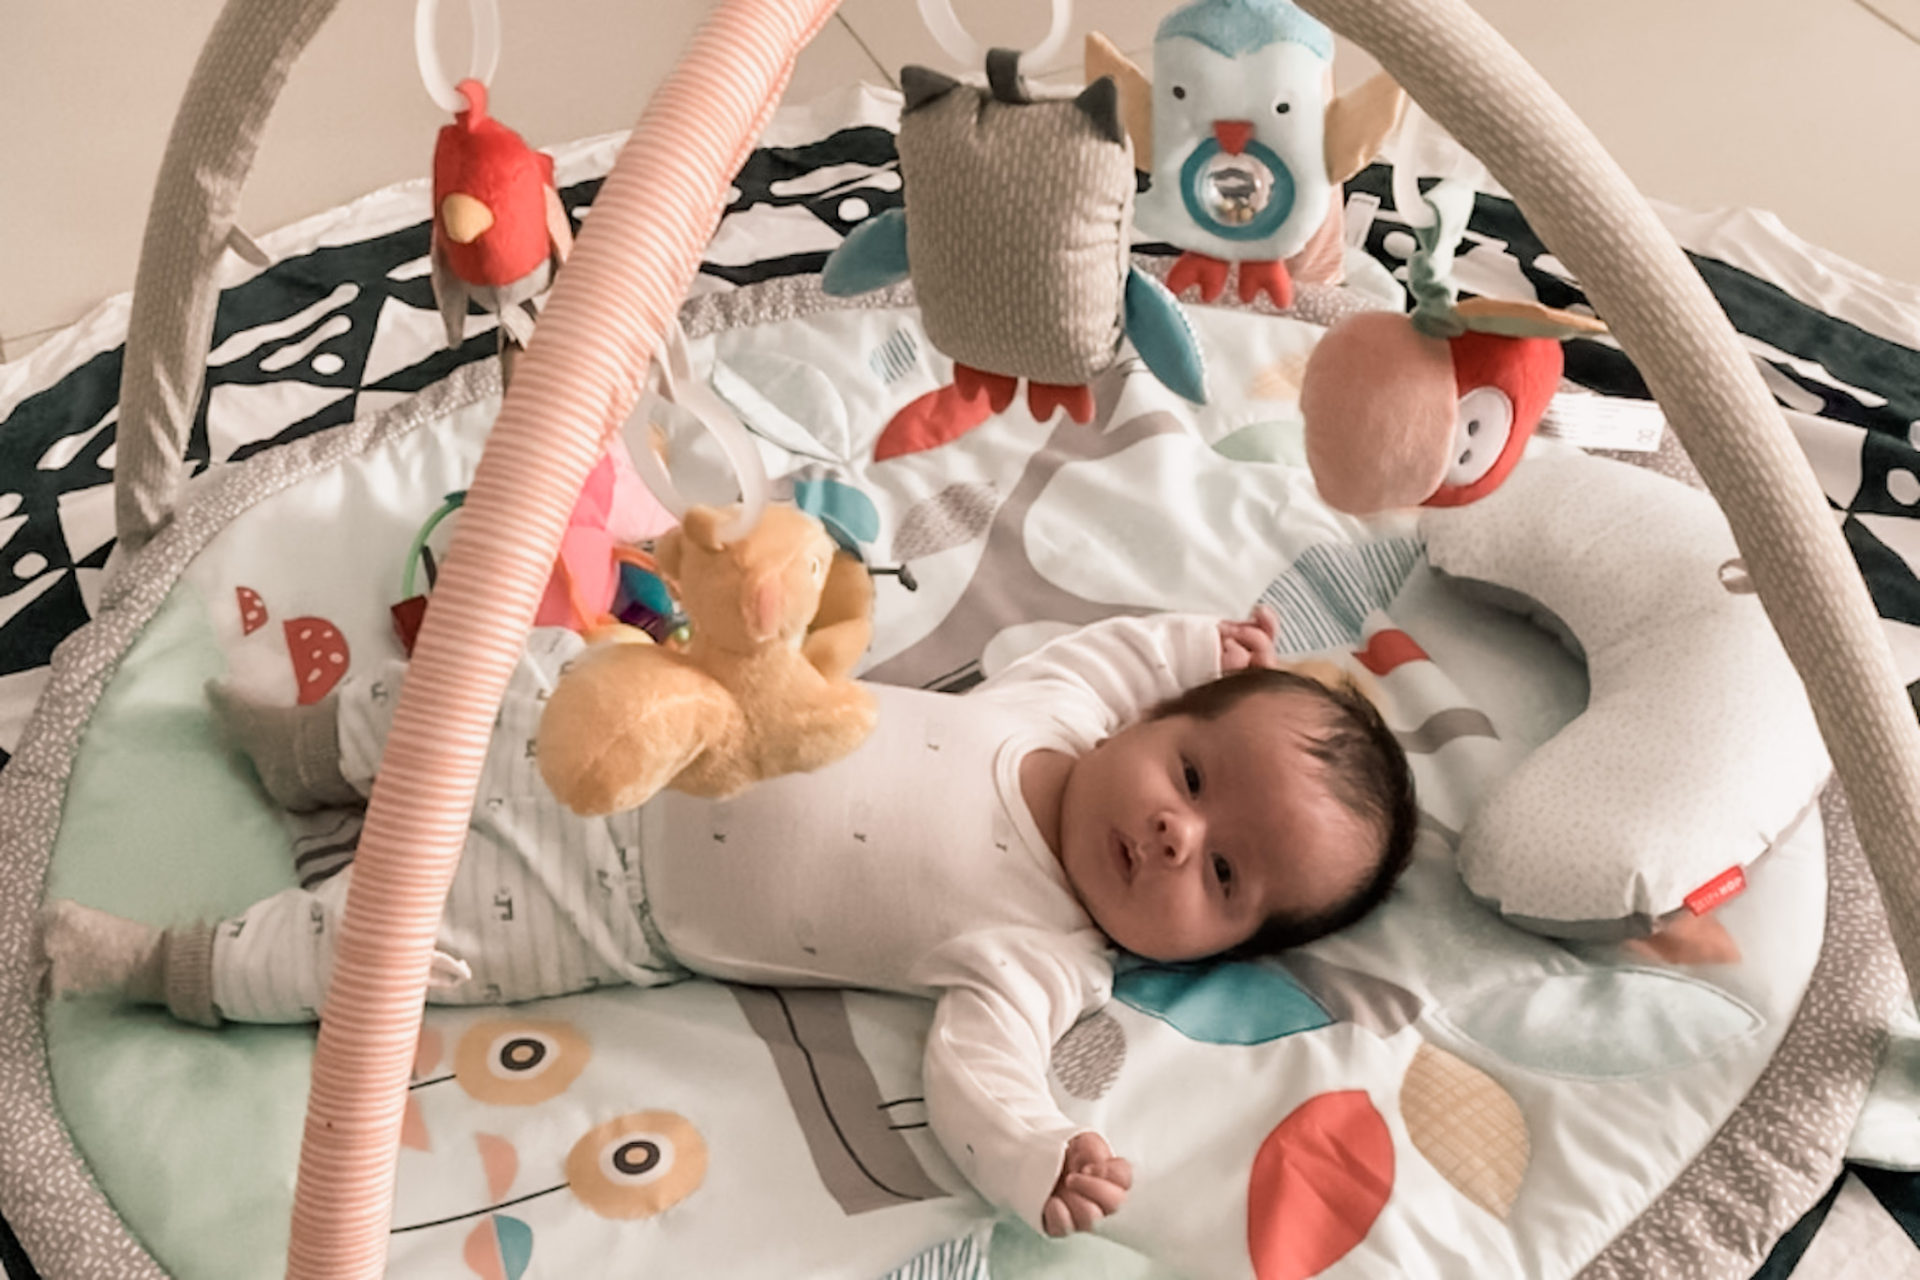 Baby playing in skip hop baby gym